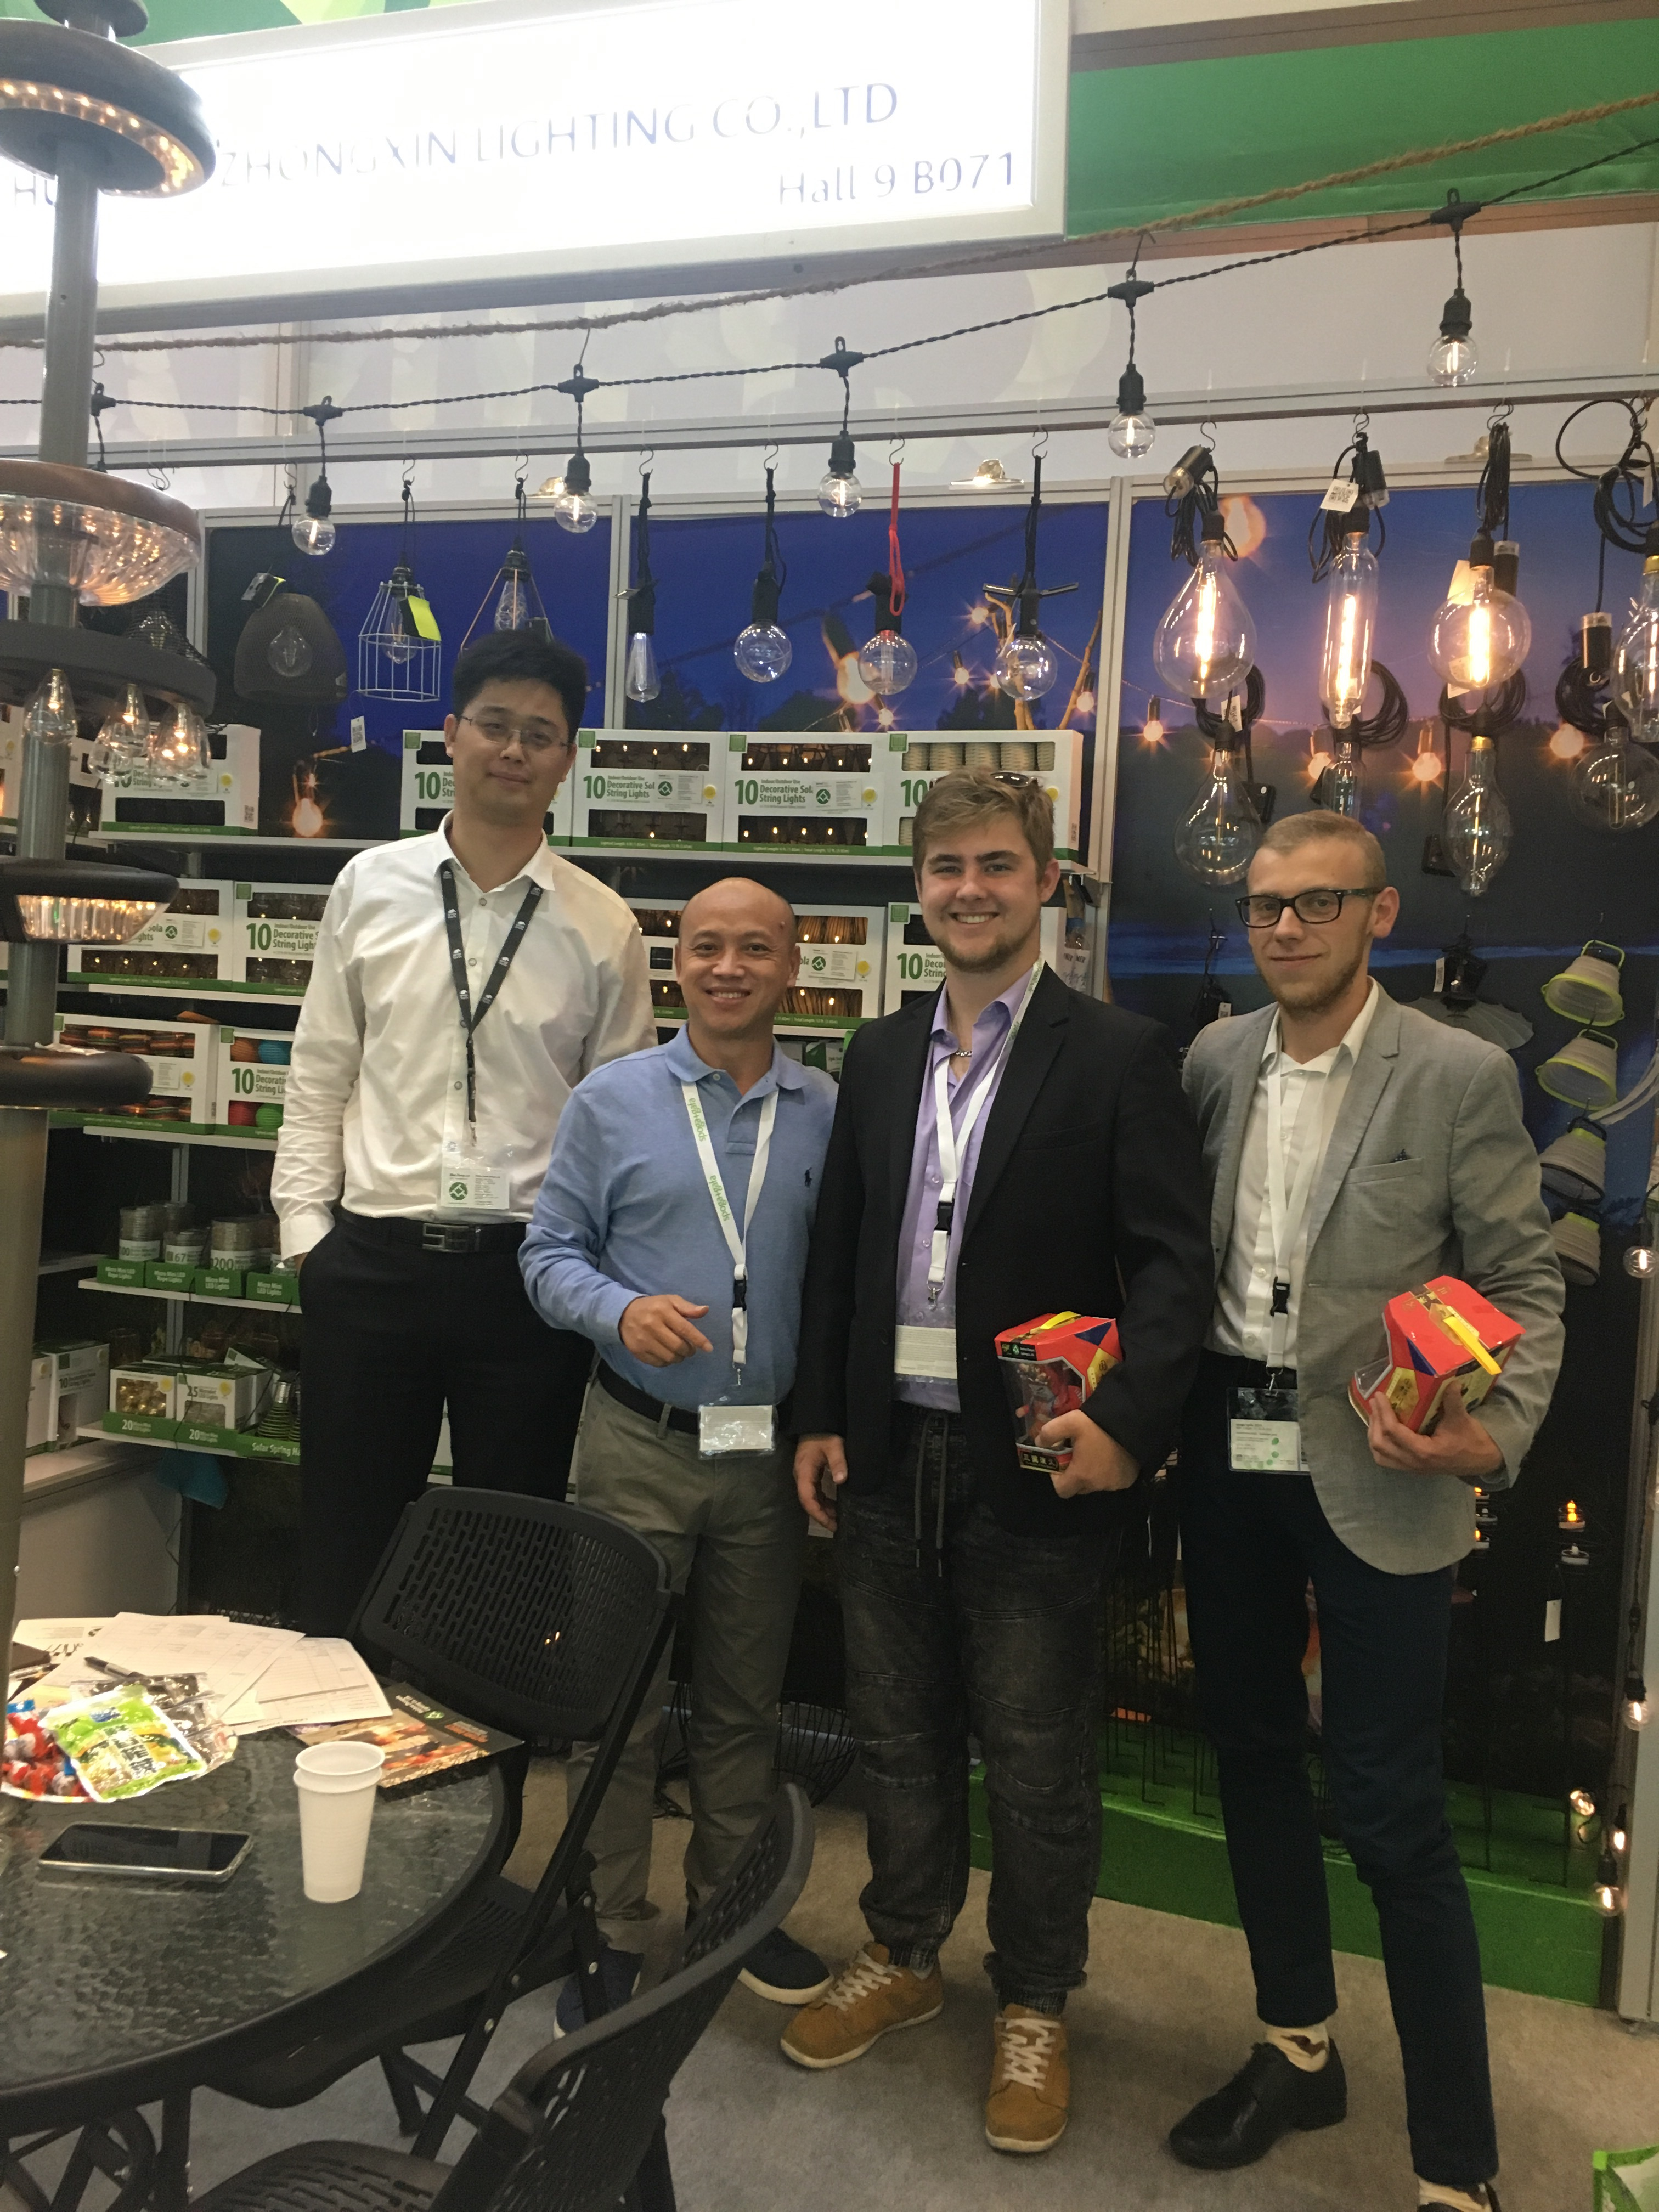 The world's most beautiful garden lantern show-2019 outdoor furniture and gardening exhibition in cologne, Germany